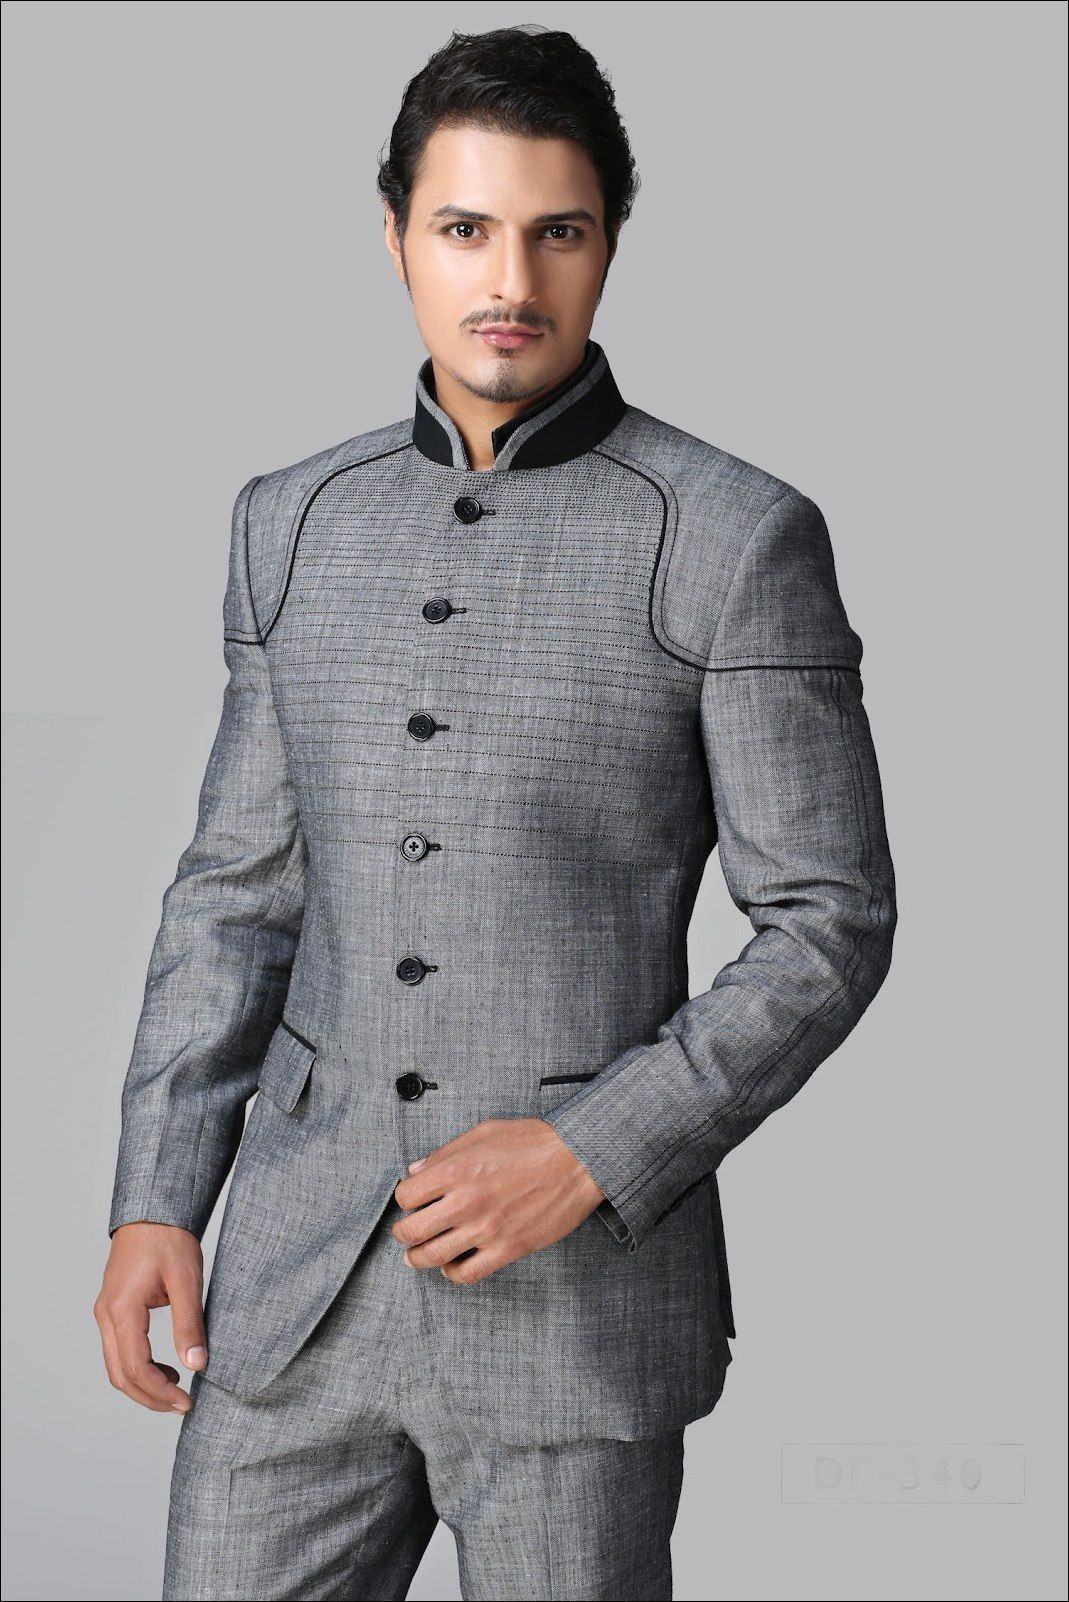 Buy Mens Wedding Sherwani Online - Nihal Fashions Latest mens suit fashions